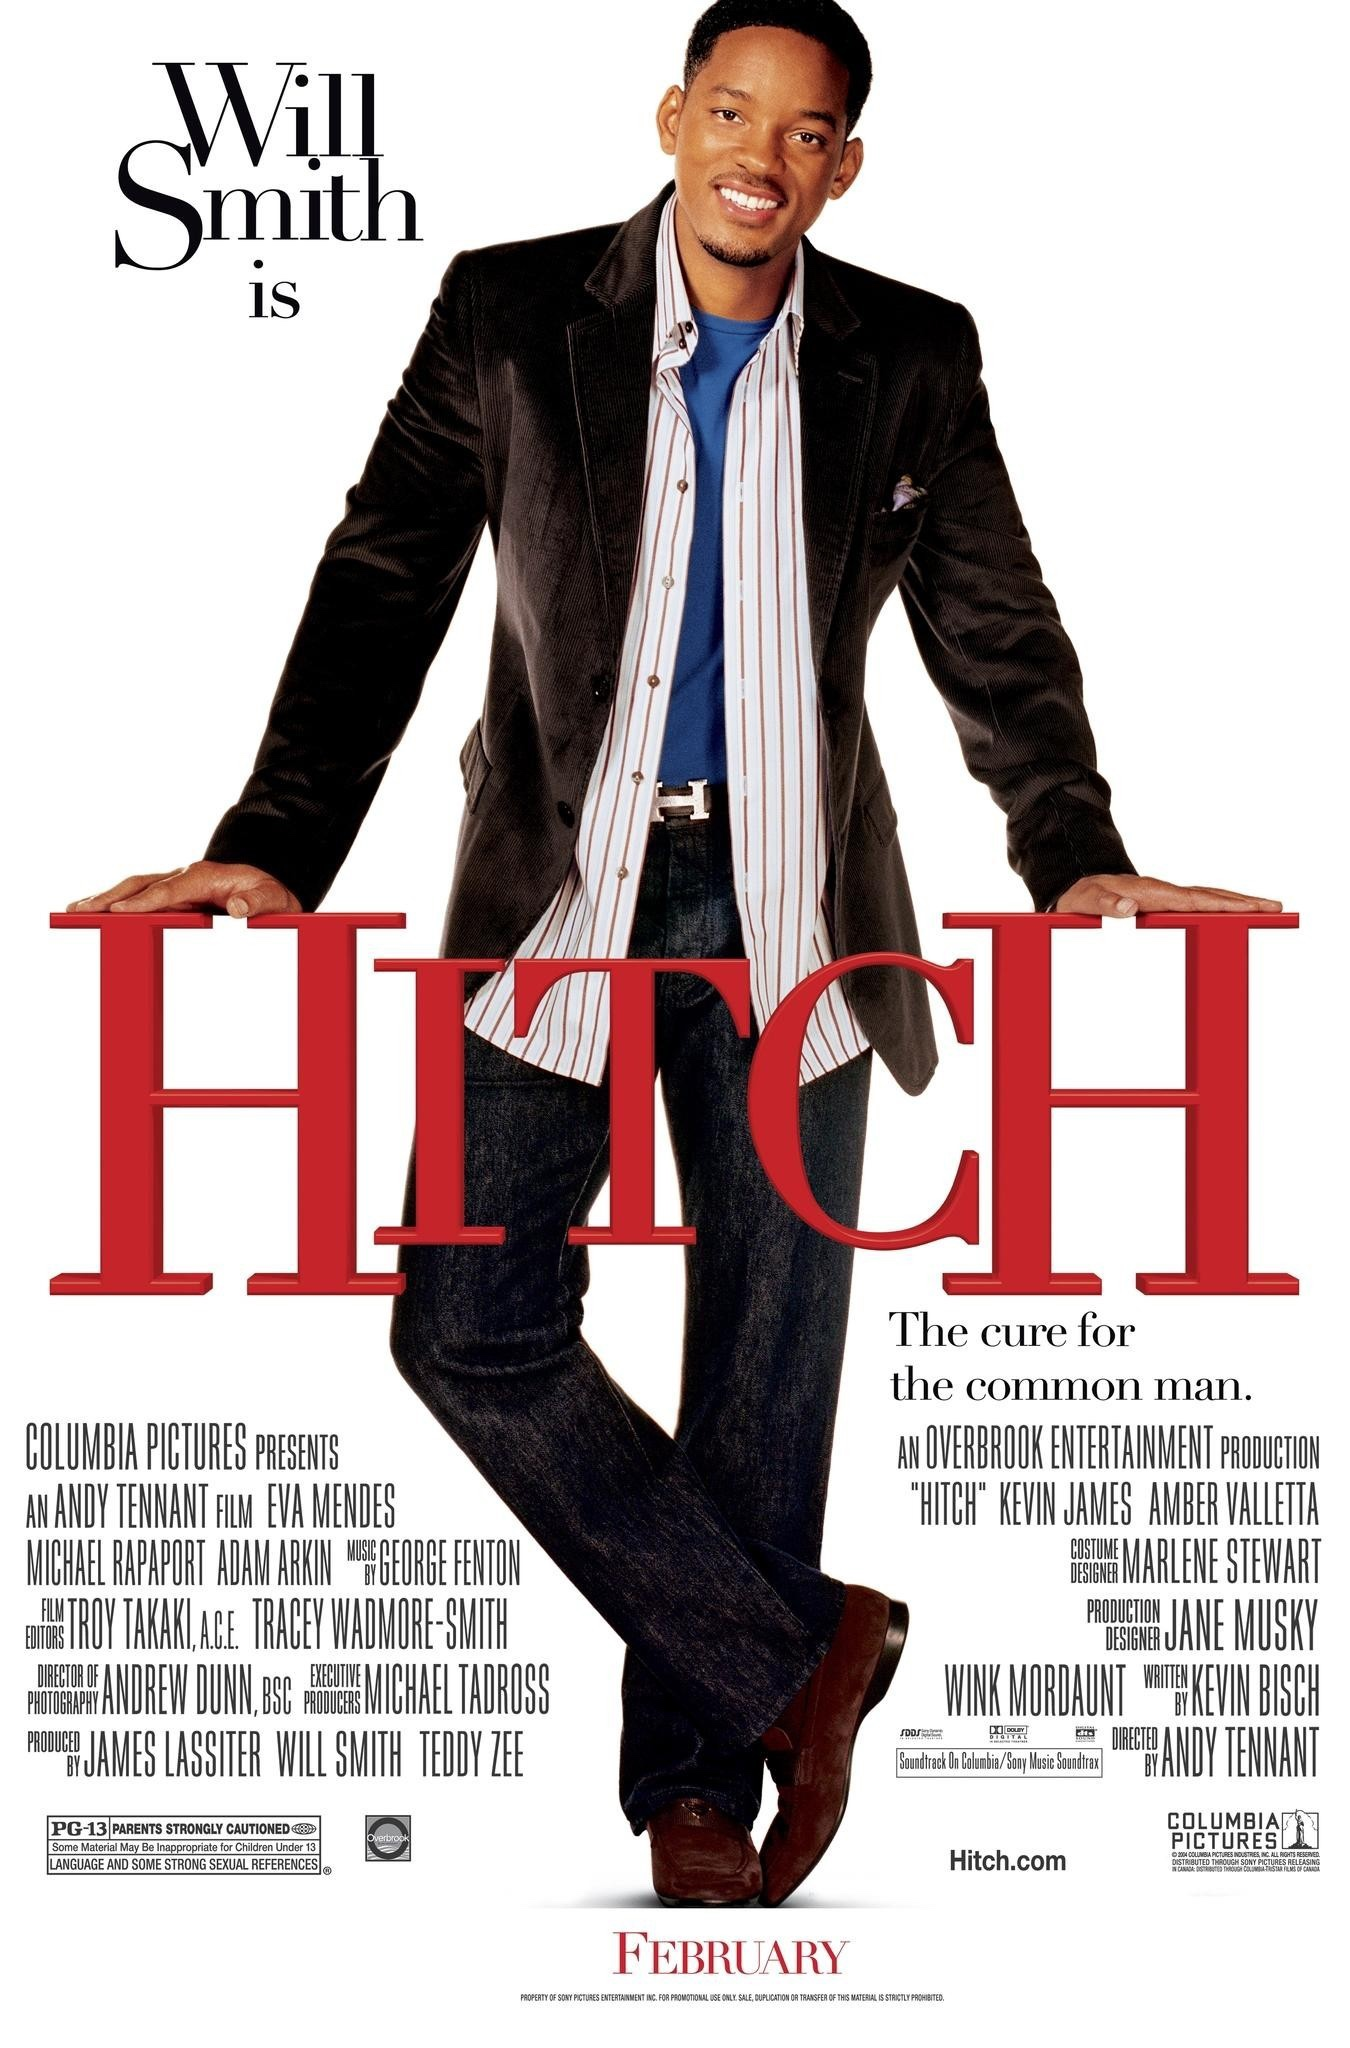 The Hitch poster showing Will Smith looking charming